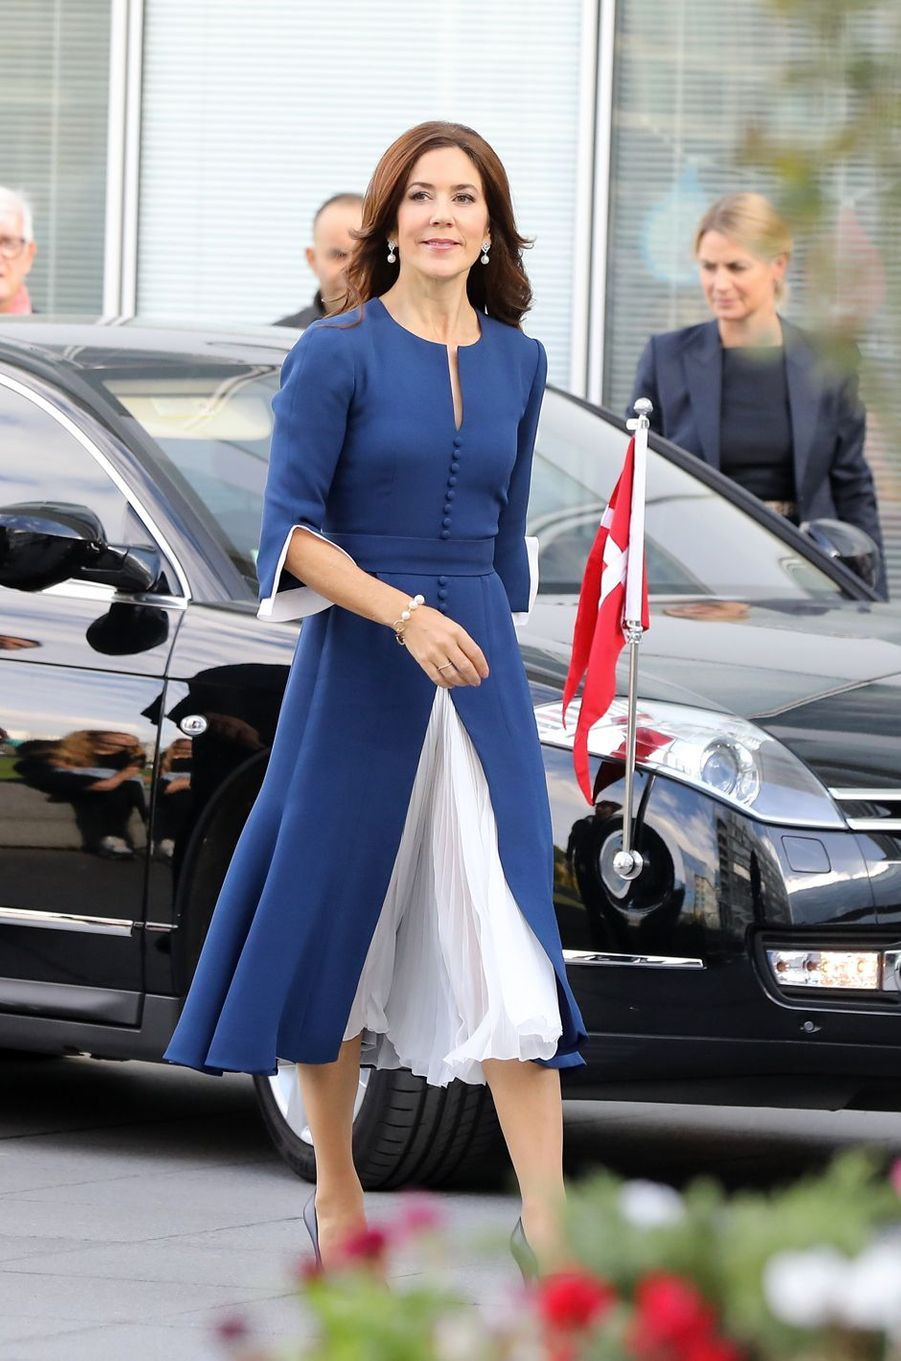 La princesse Mary de Danemark à Paris, le 7 octobre 2019